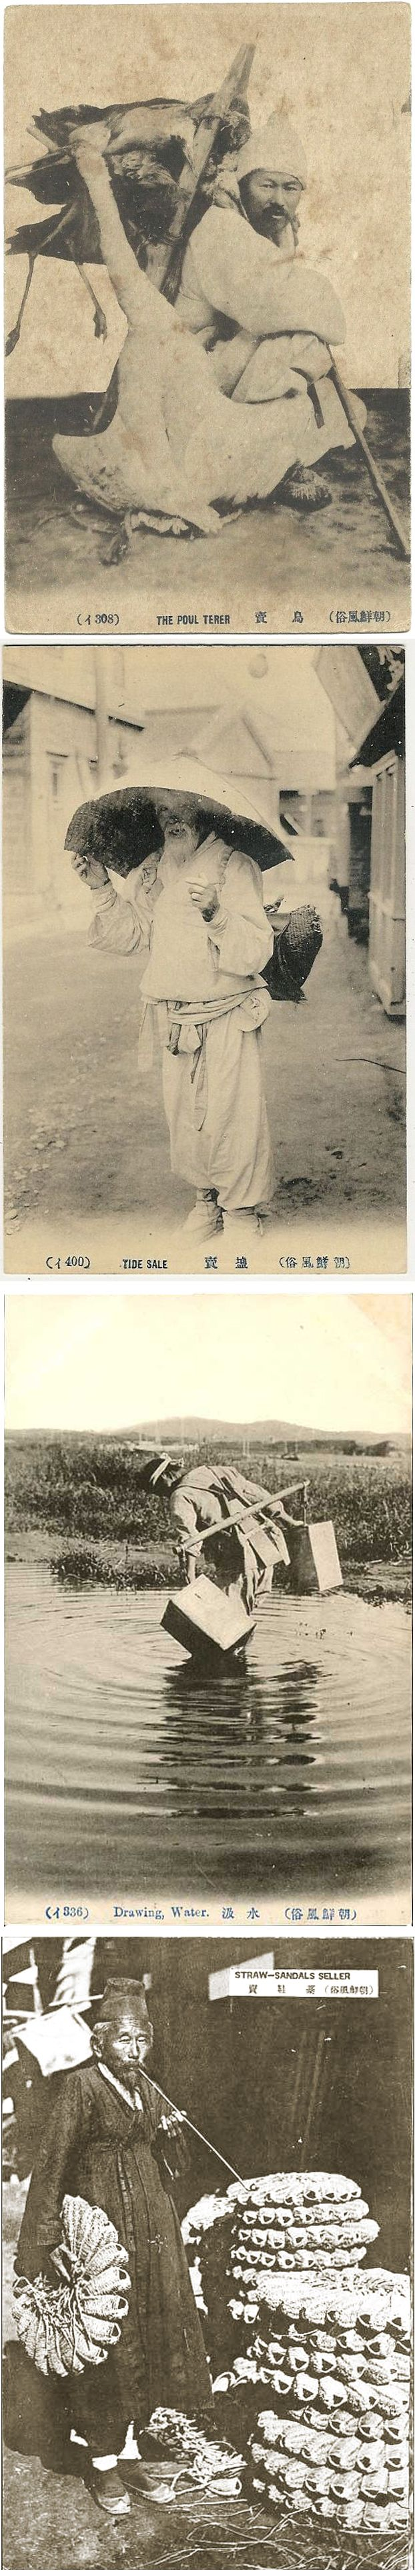 """Korea postcards ca 1910. From top: 308 """"The poul terer"""" poultry seller - 400 """"Tide Sale"""" man in a rain hat - 336 """"Drawing, Water."""" - """"Straw-sandals seller"""""""